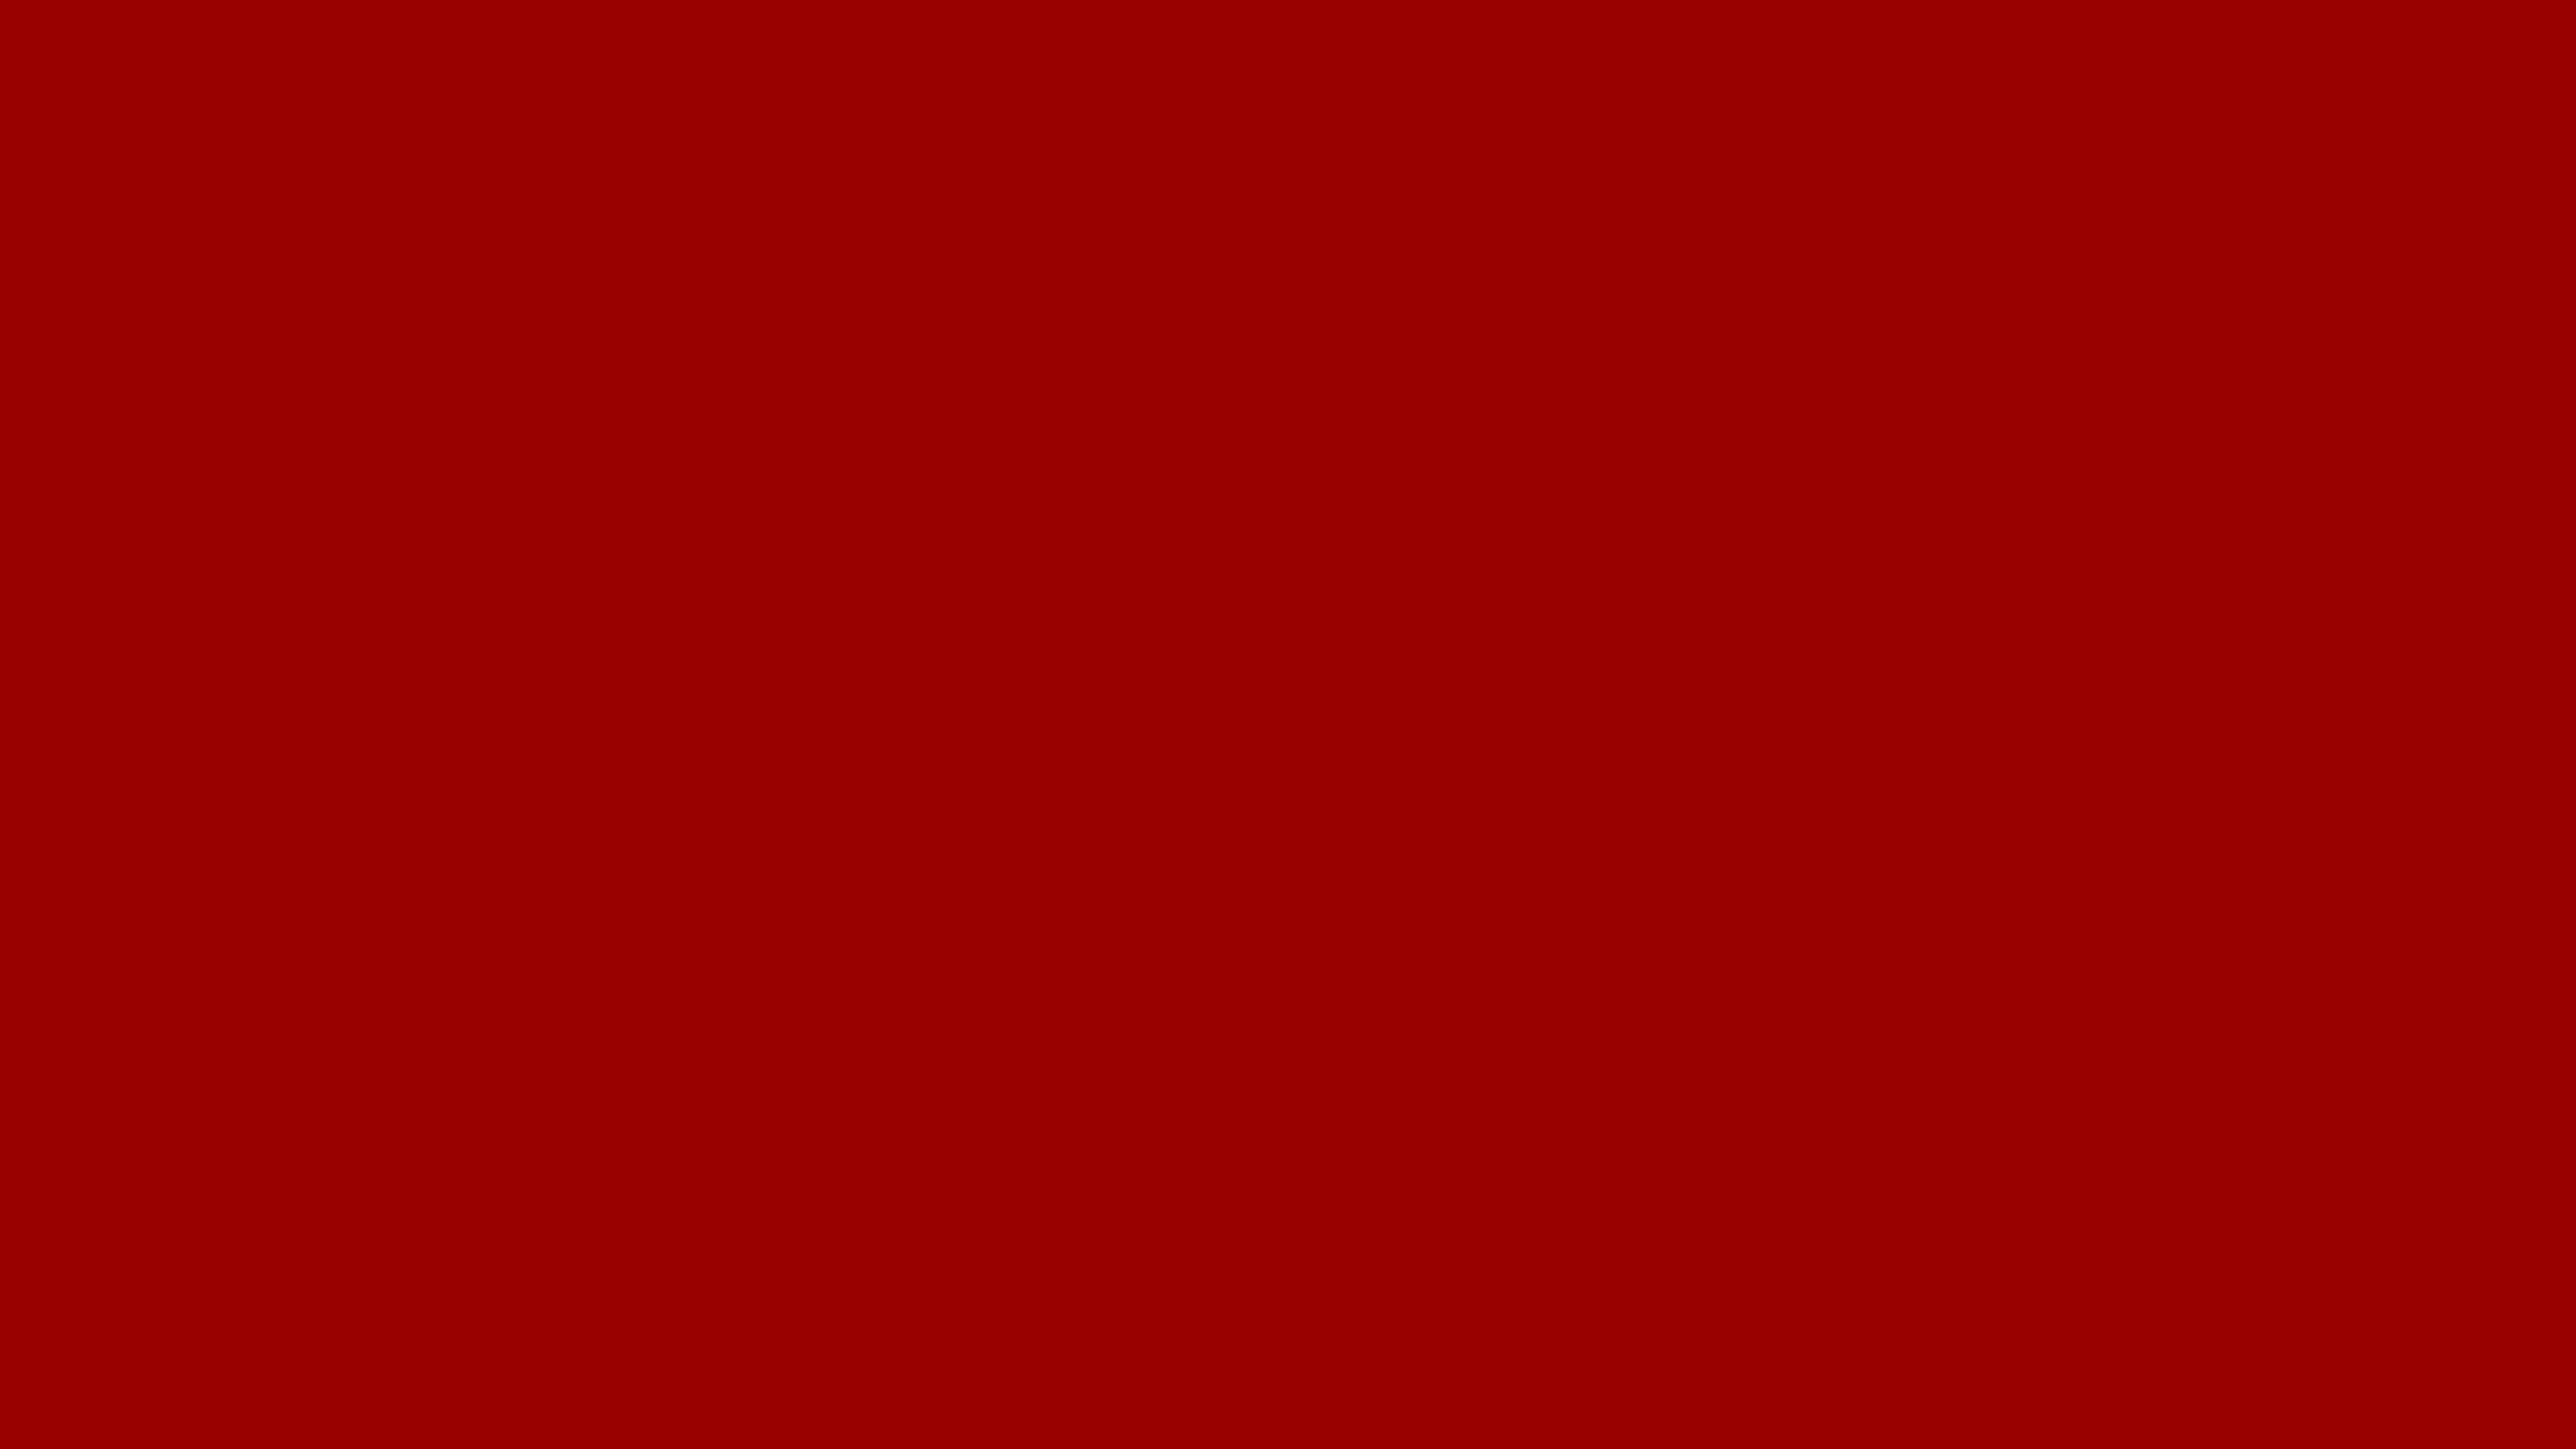 5120x2880 OU Crimson Red Solid Color Background